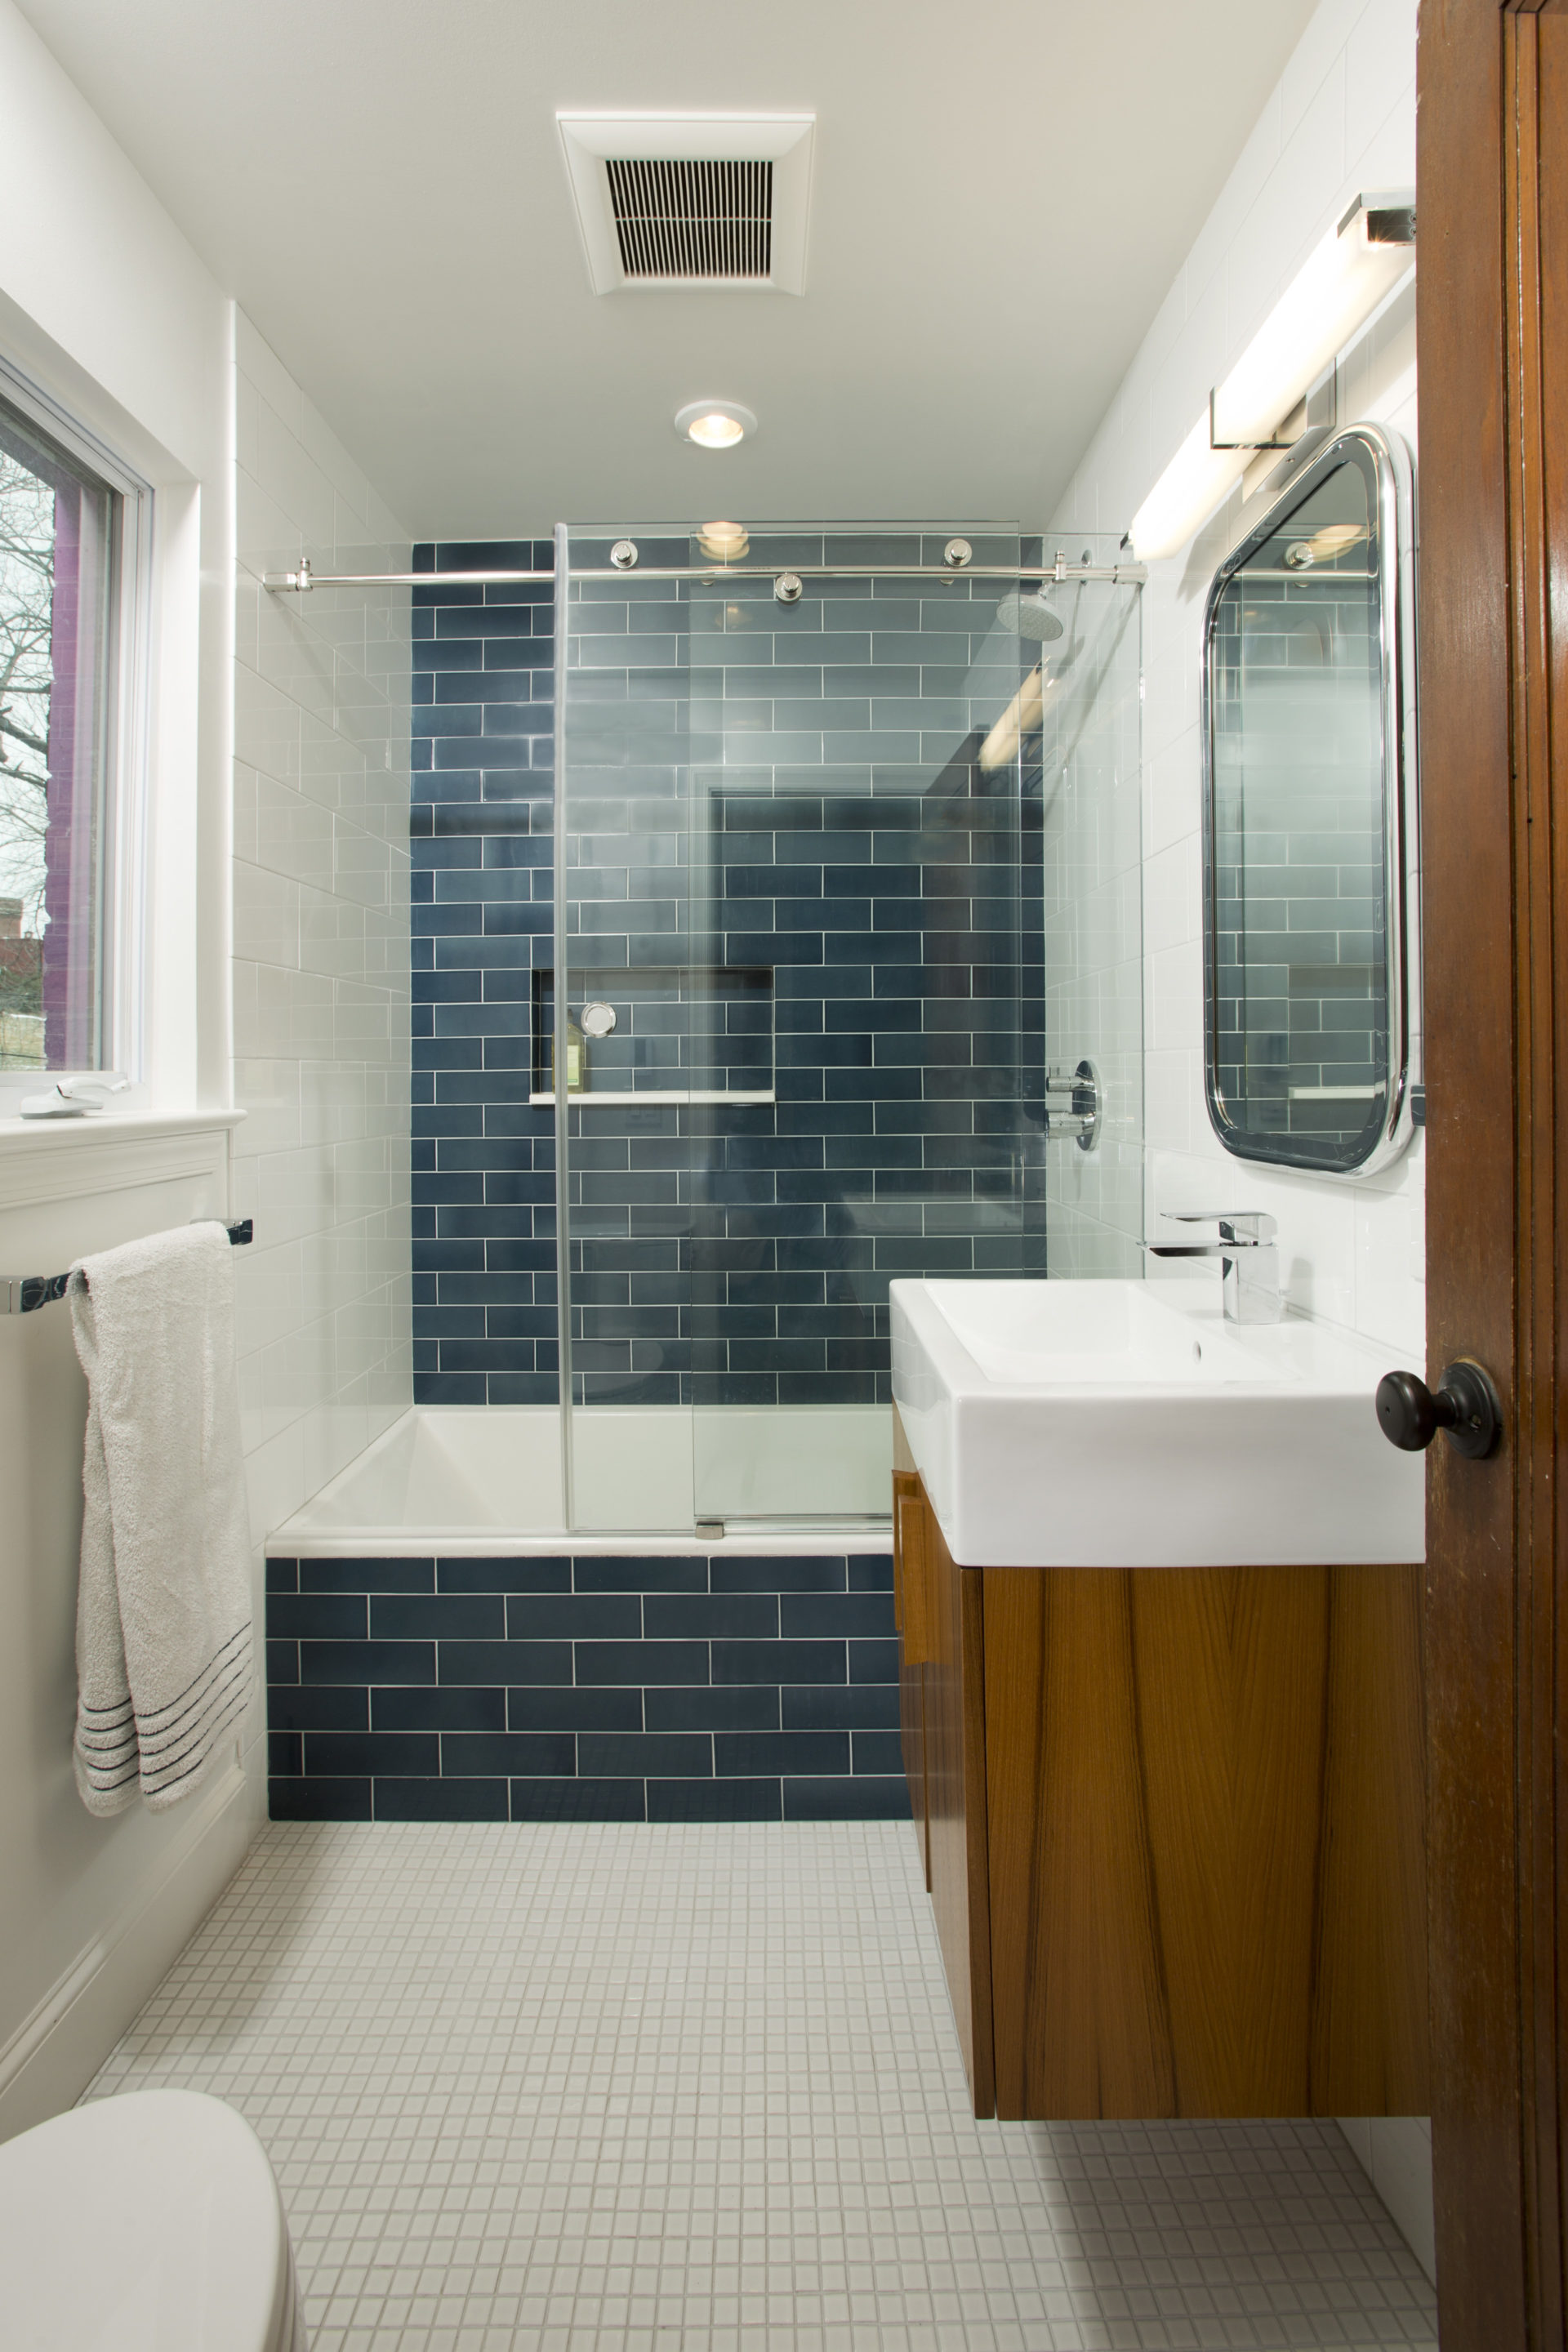 Bathroom Storage Furniture Chevy Chase Bathroom Renovation - Four Brothers Llc